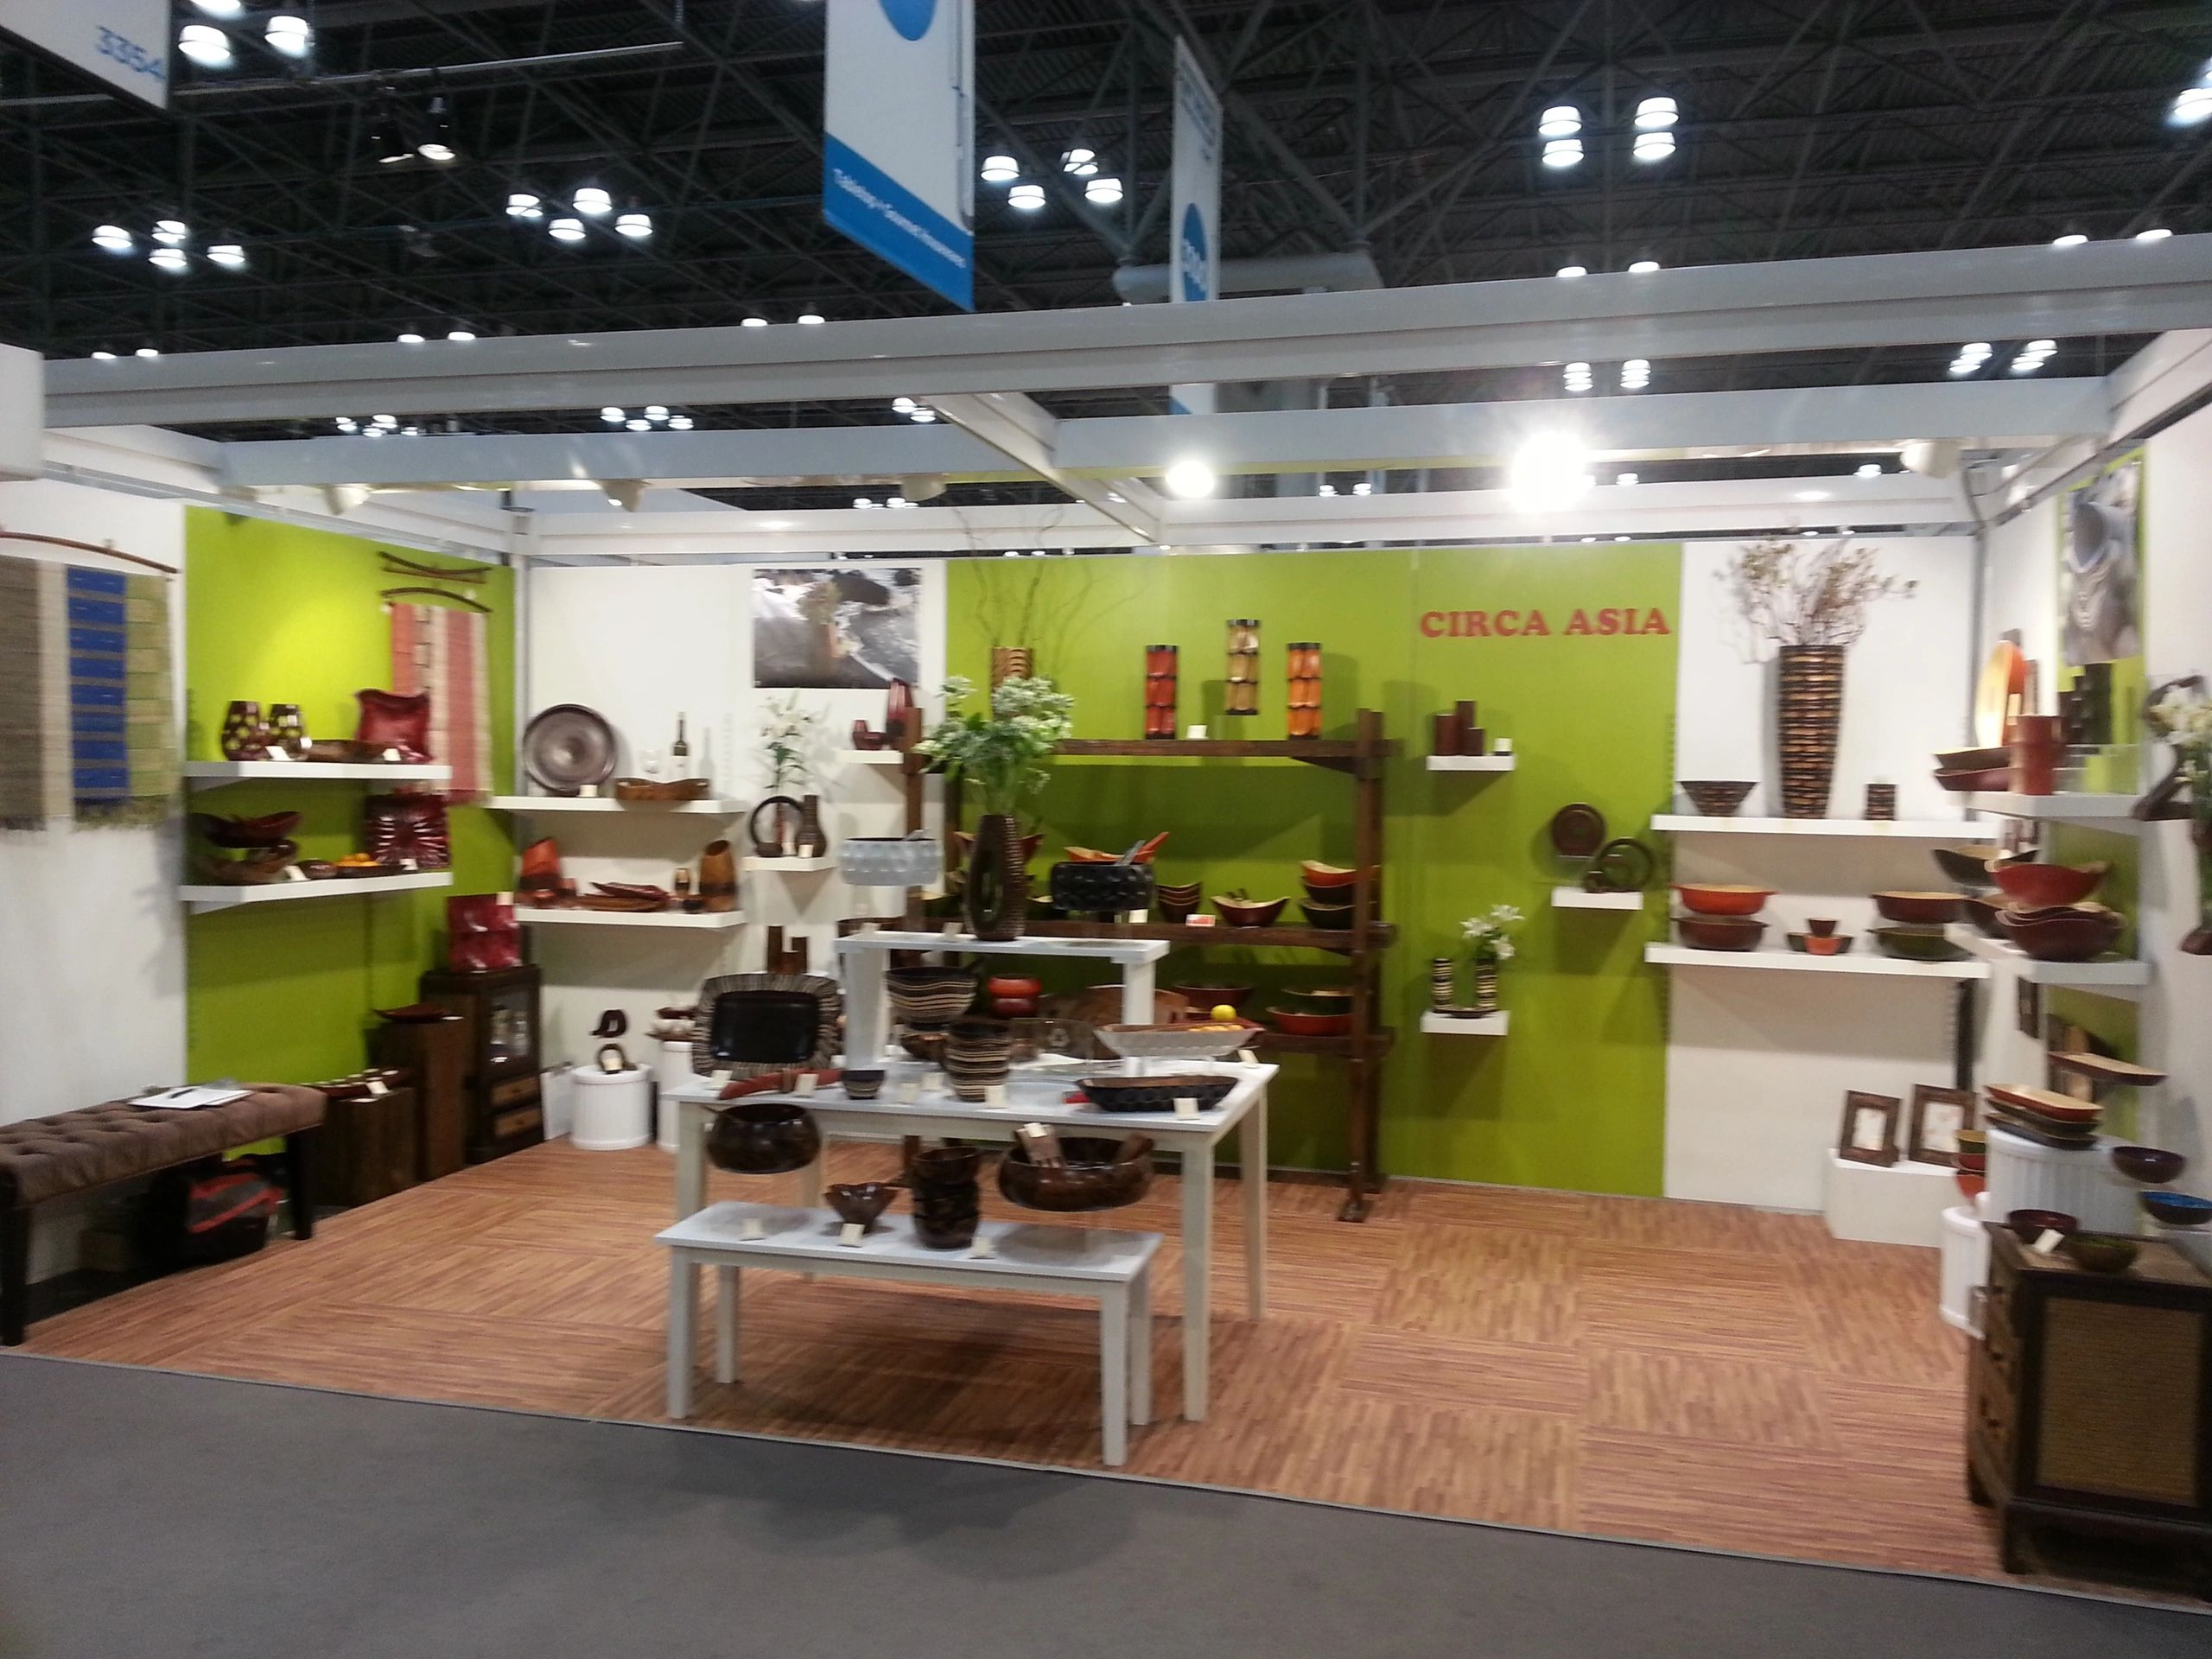 "{""blocks"":[{""key"":""a4694"",""text"":""A design/freshen up of an existing trade show booth done \""Telecommute\"" style."",""type"":""unstyled"",""depth"":0,""inlineStyleRanges"":[],""entityRanges"":[],""data"":{}}],""entityMap"":{}}"